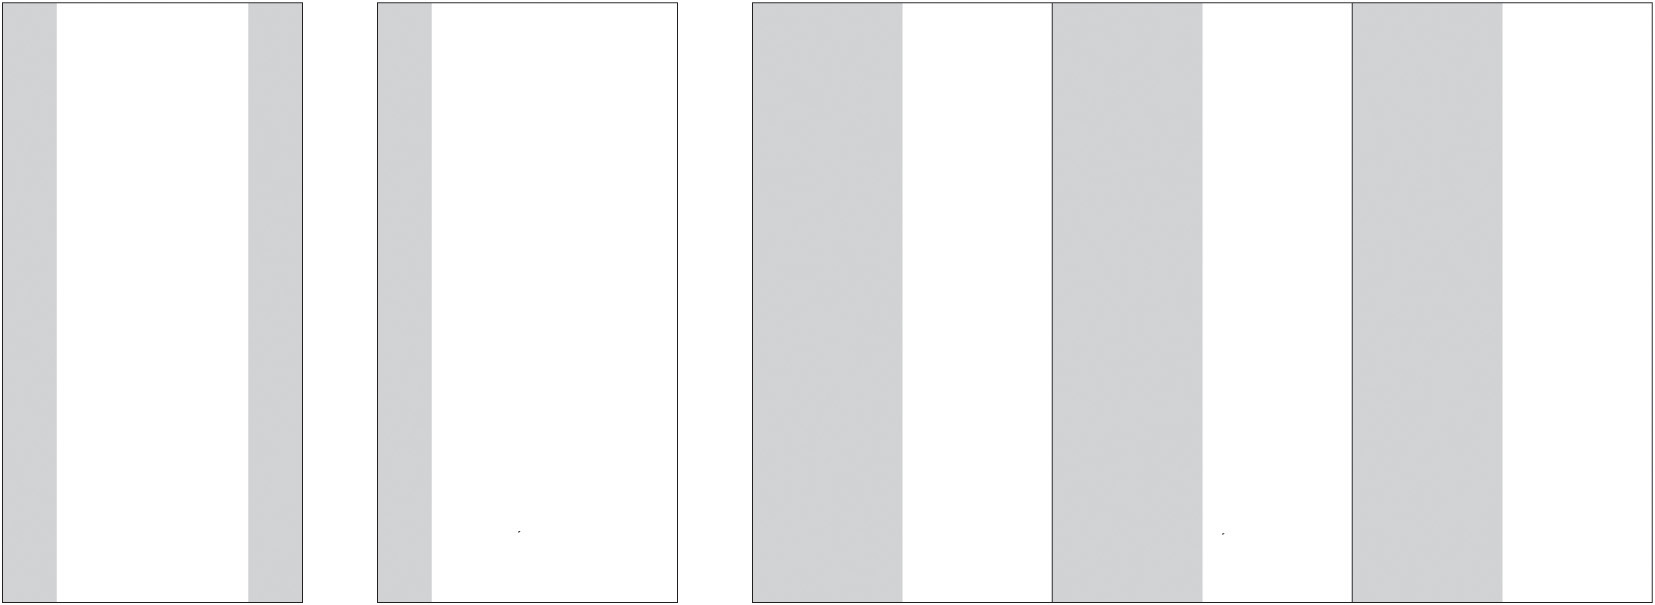 "Standard Double Edge Layout (108"" height by full width), Single Edge Panel and Multi-Panel Variations"